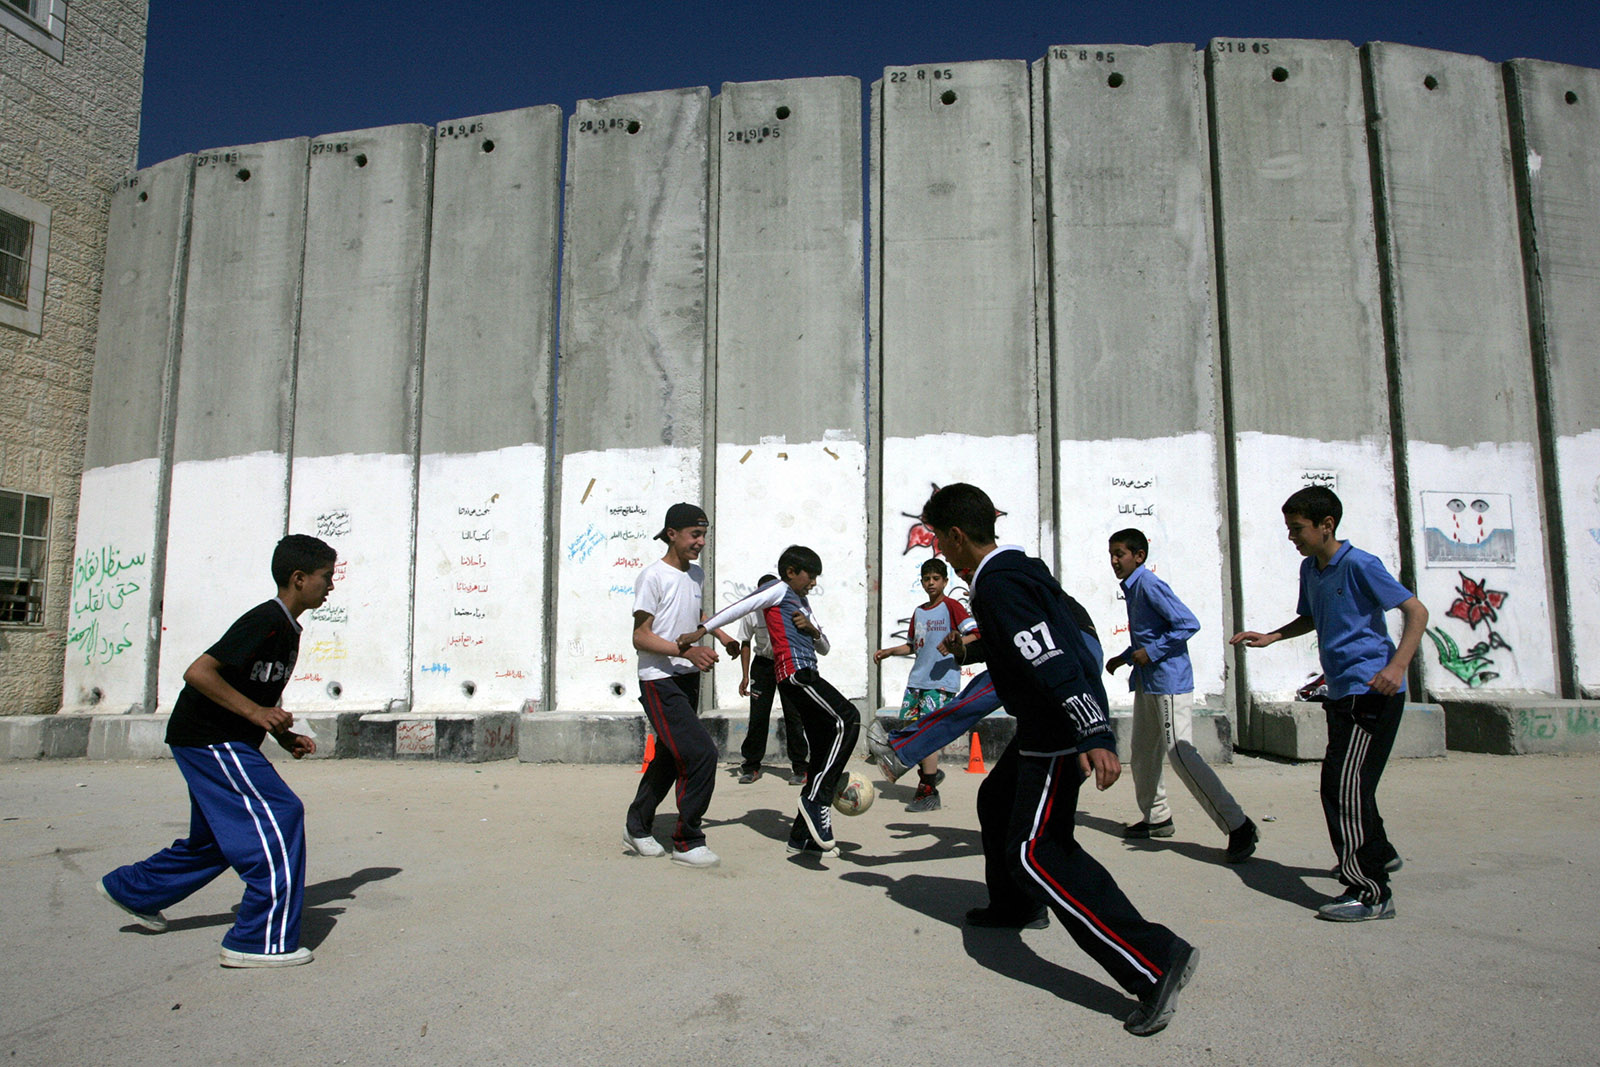 Confederation: The One Possible Israel-Palestine Solution